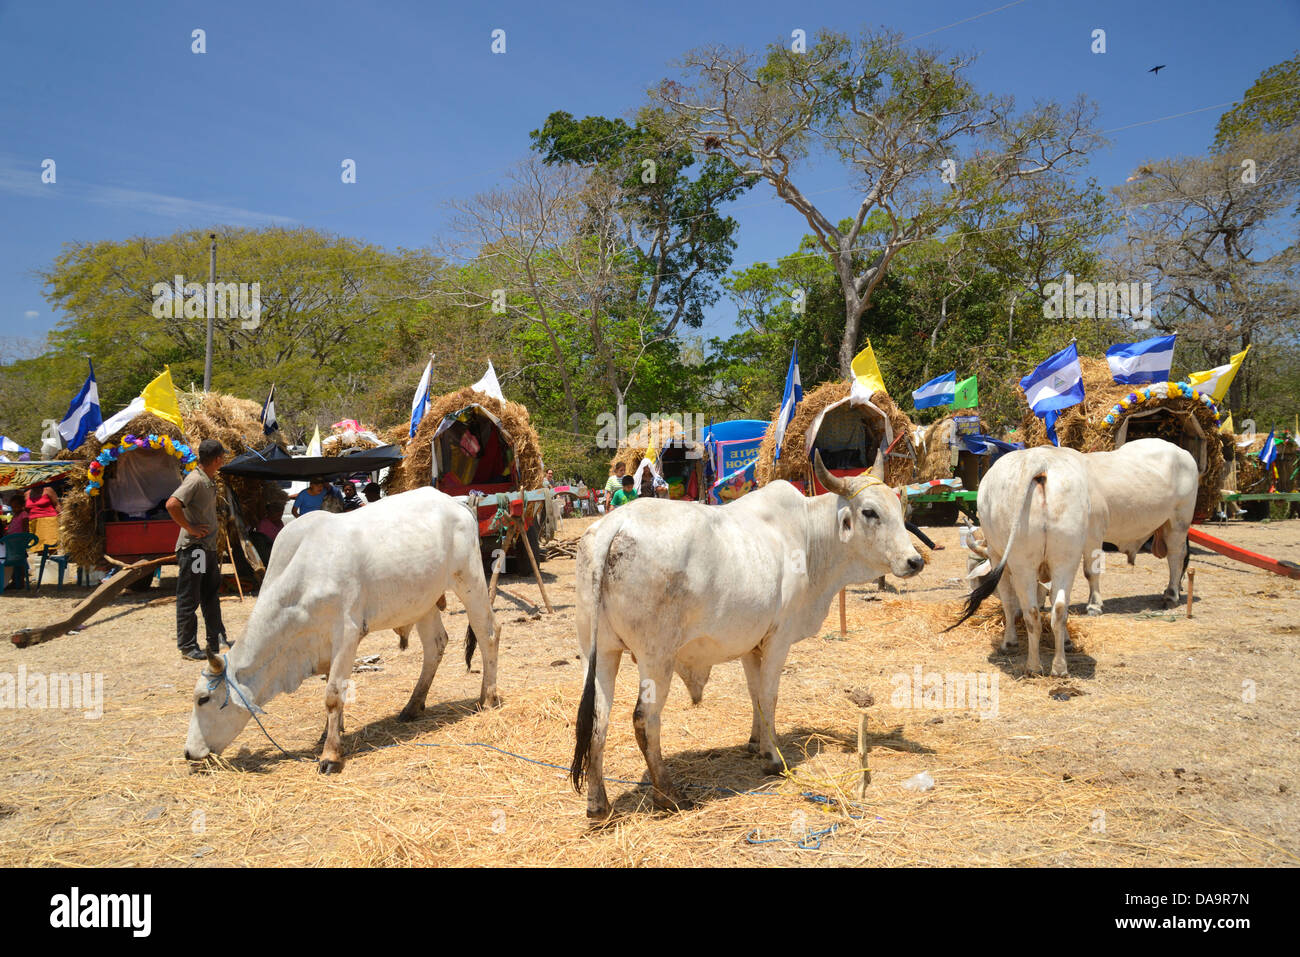 Central America, Nicaragua, Rivas, pilgrim, camp, procession, religion, religious, catholic, cow, cows - Stock Image